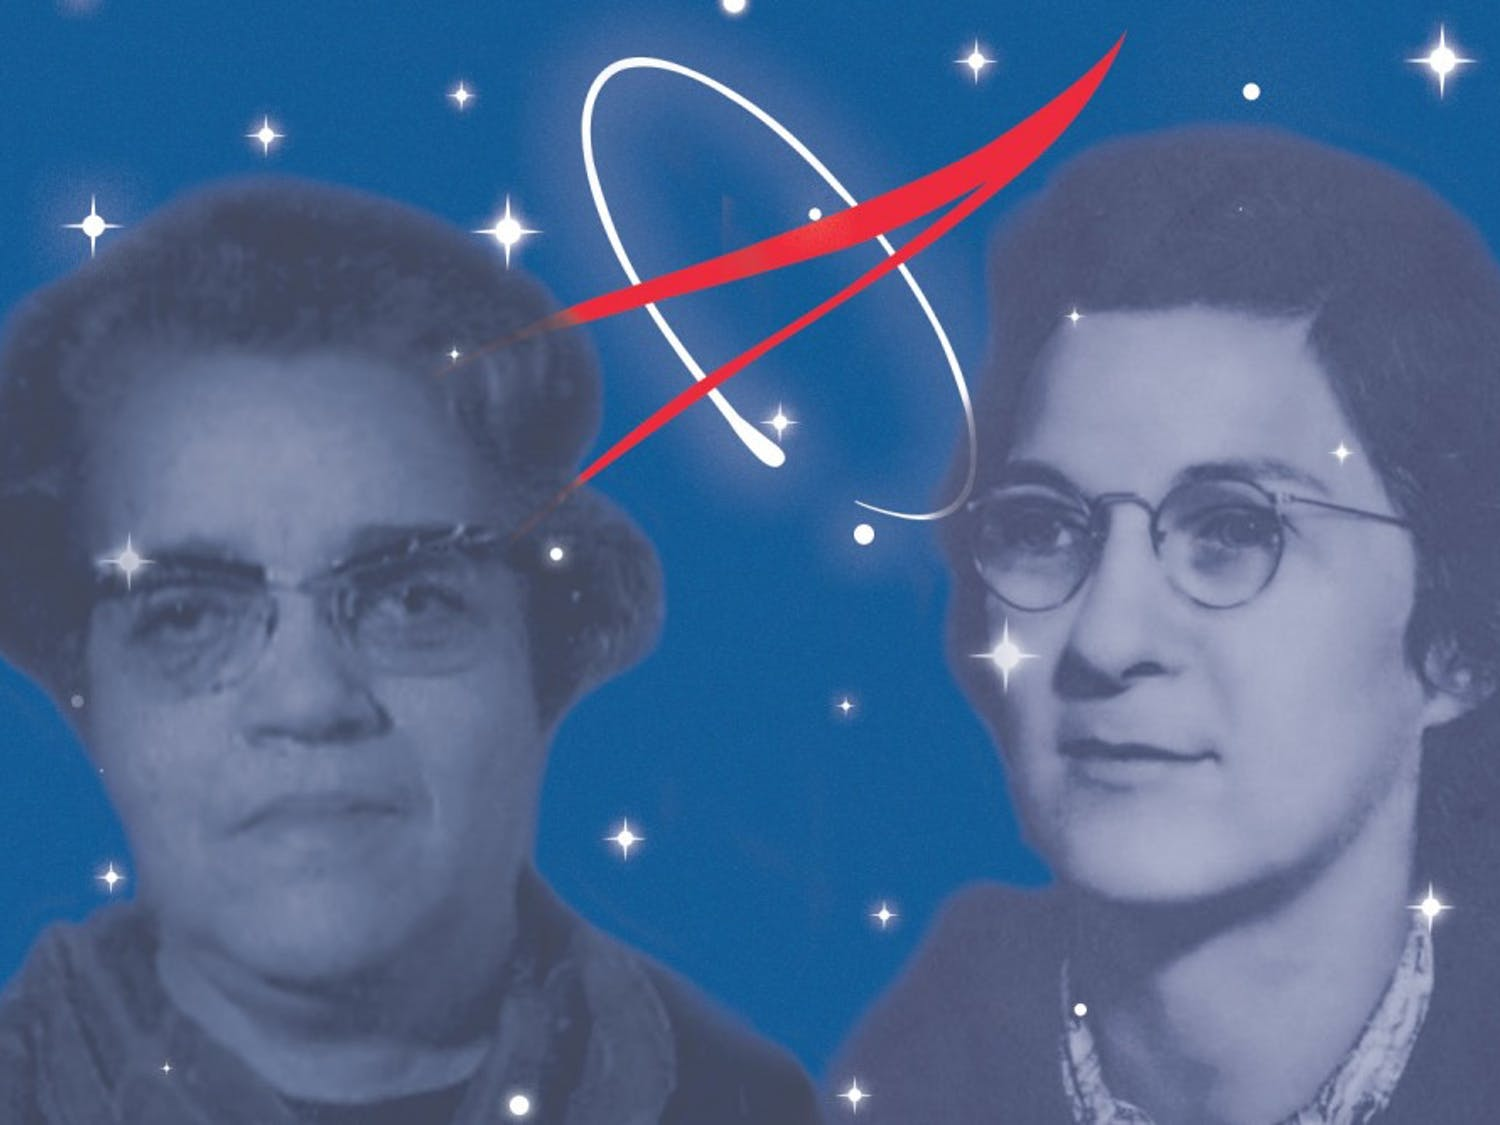 """Virginia Tucker and Dorothy Vaughan served as human """"computers,"""" completing calculations for NASA. Both women once lived in North Carolina. (Original photos courtesy of Morehead Planetarium and Science Center)"""